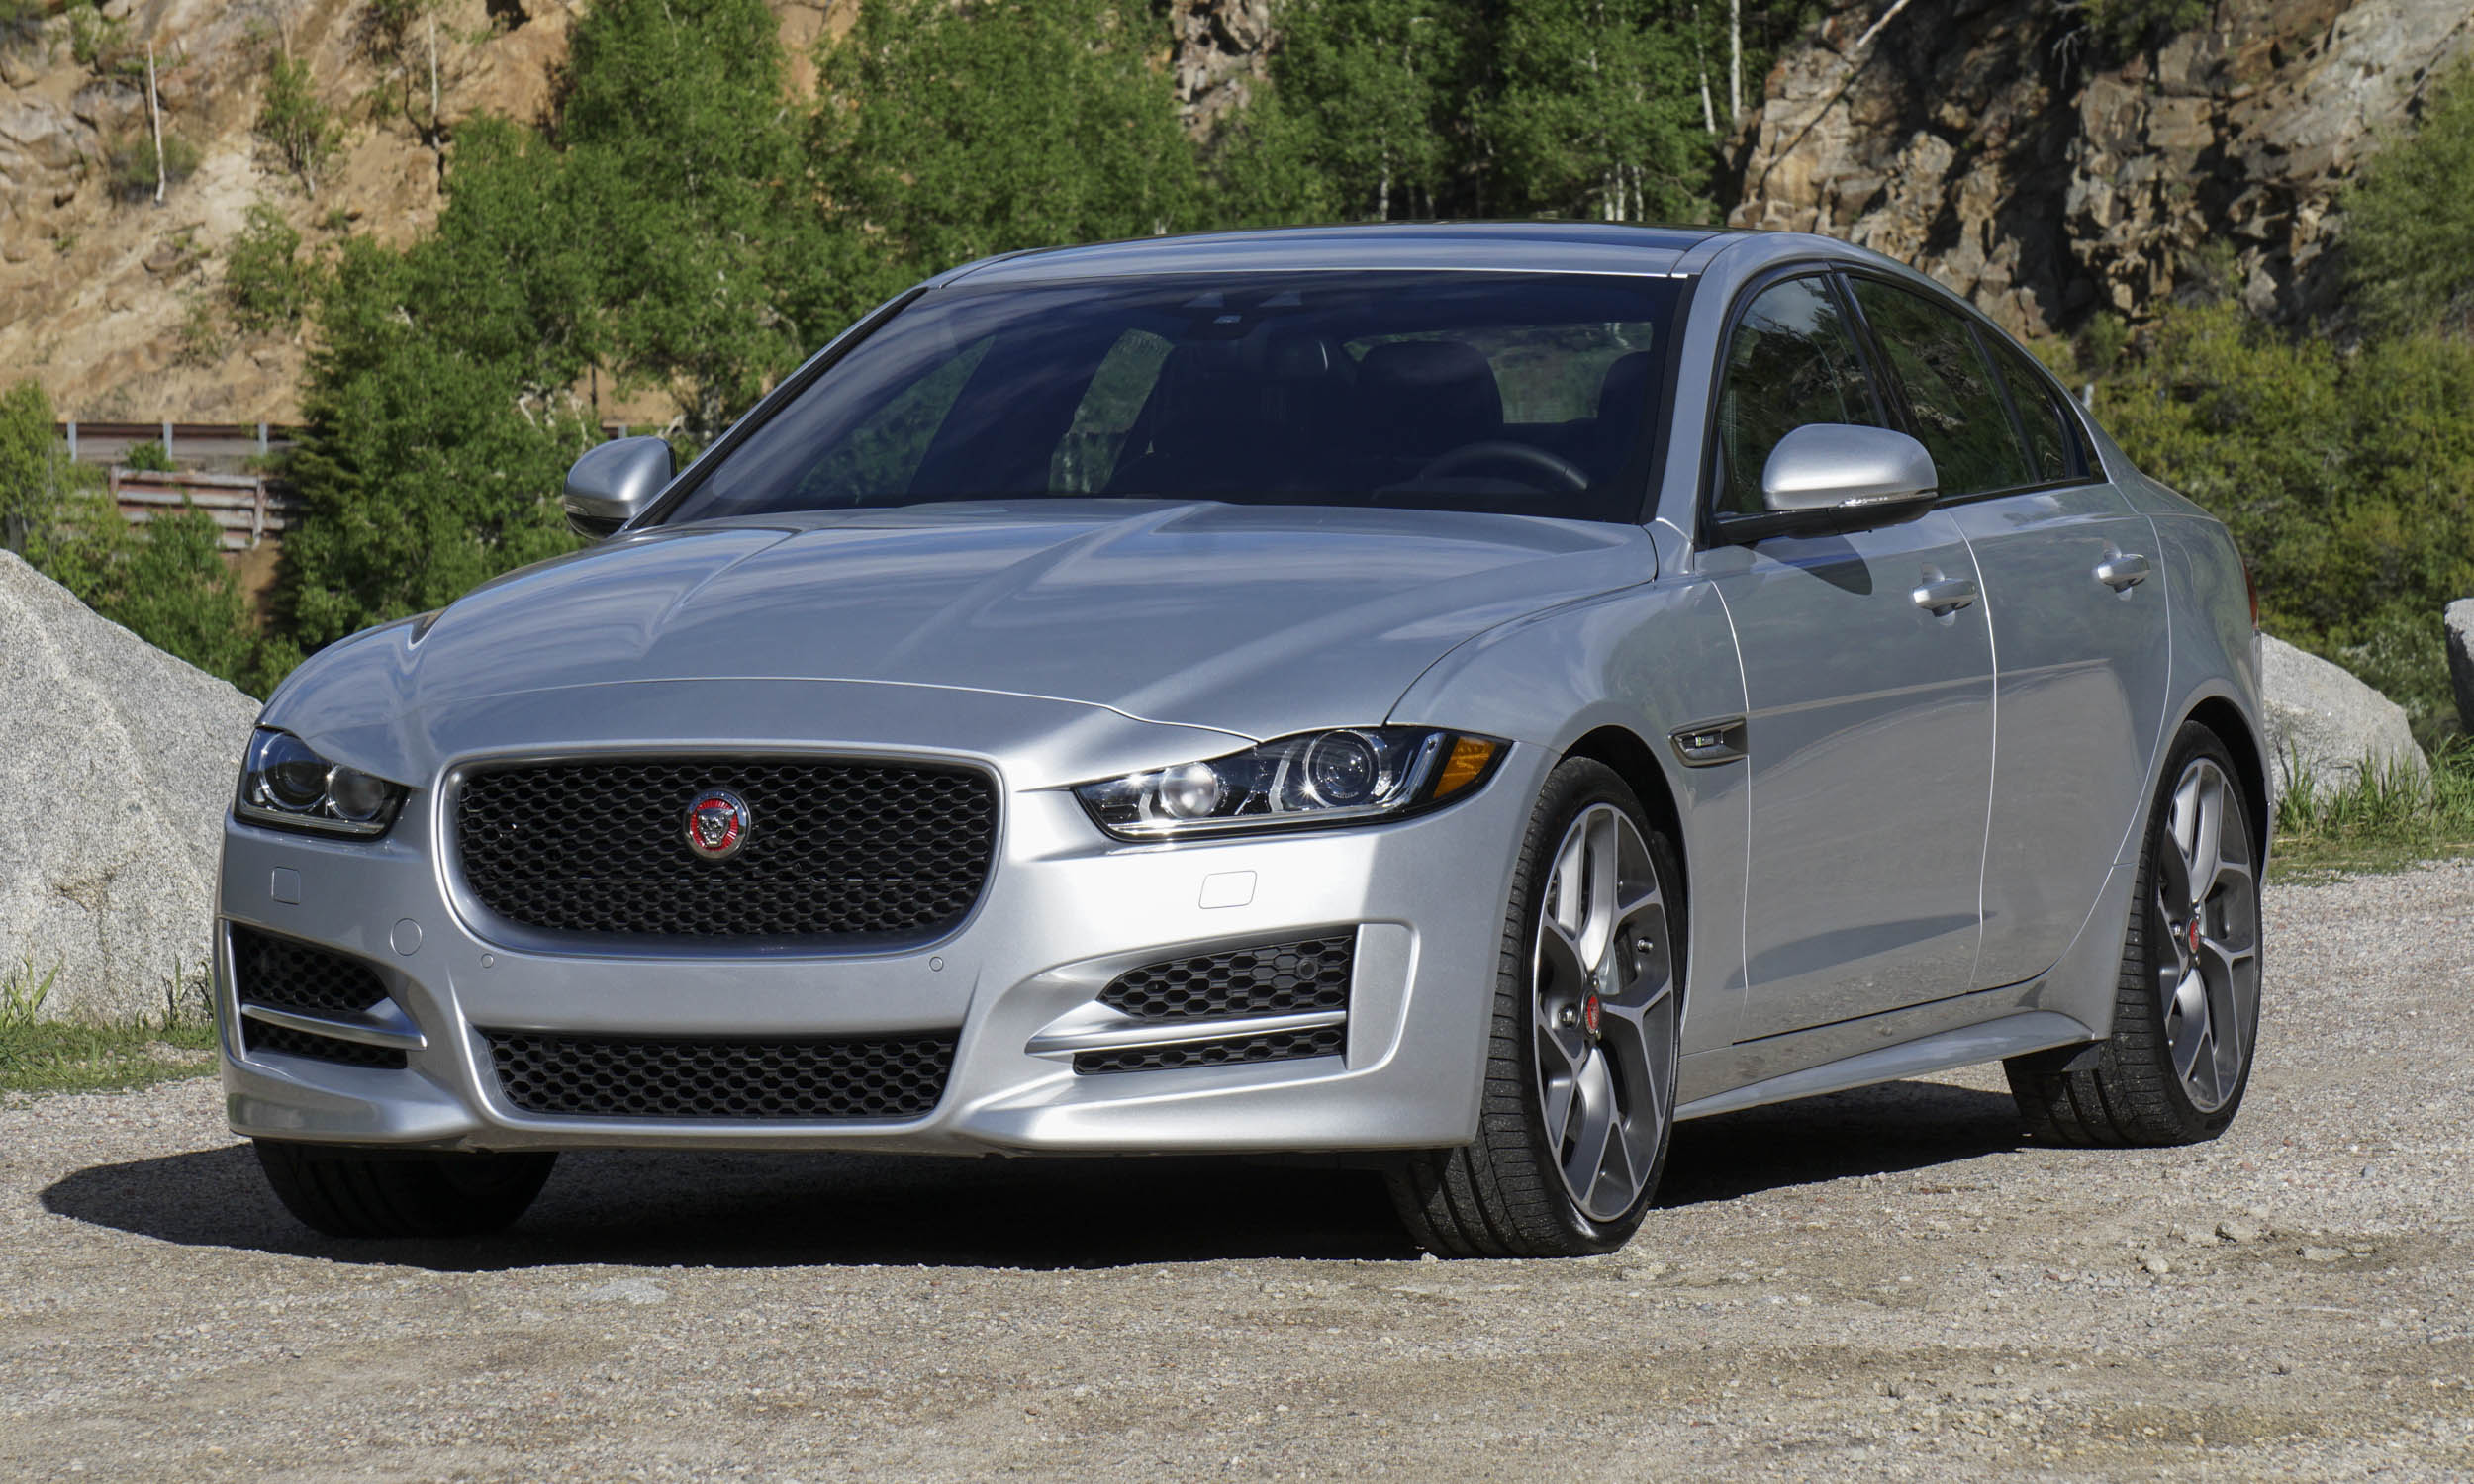 2017 Jaguar Lineup >> 2017 Jaguar XE: First Drive Review - » AutoNXT